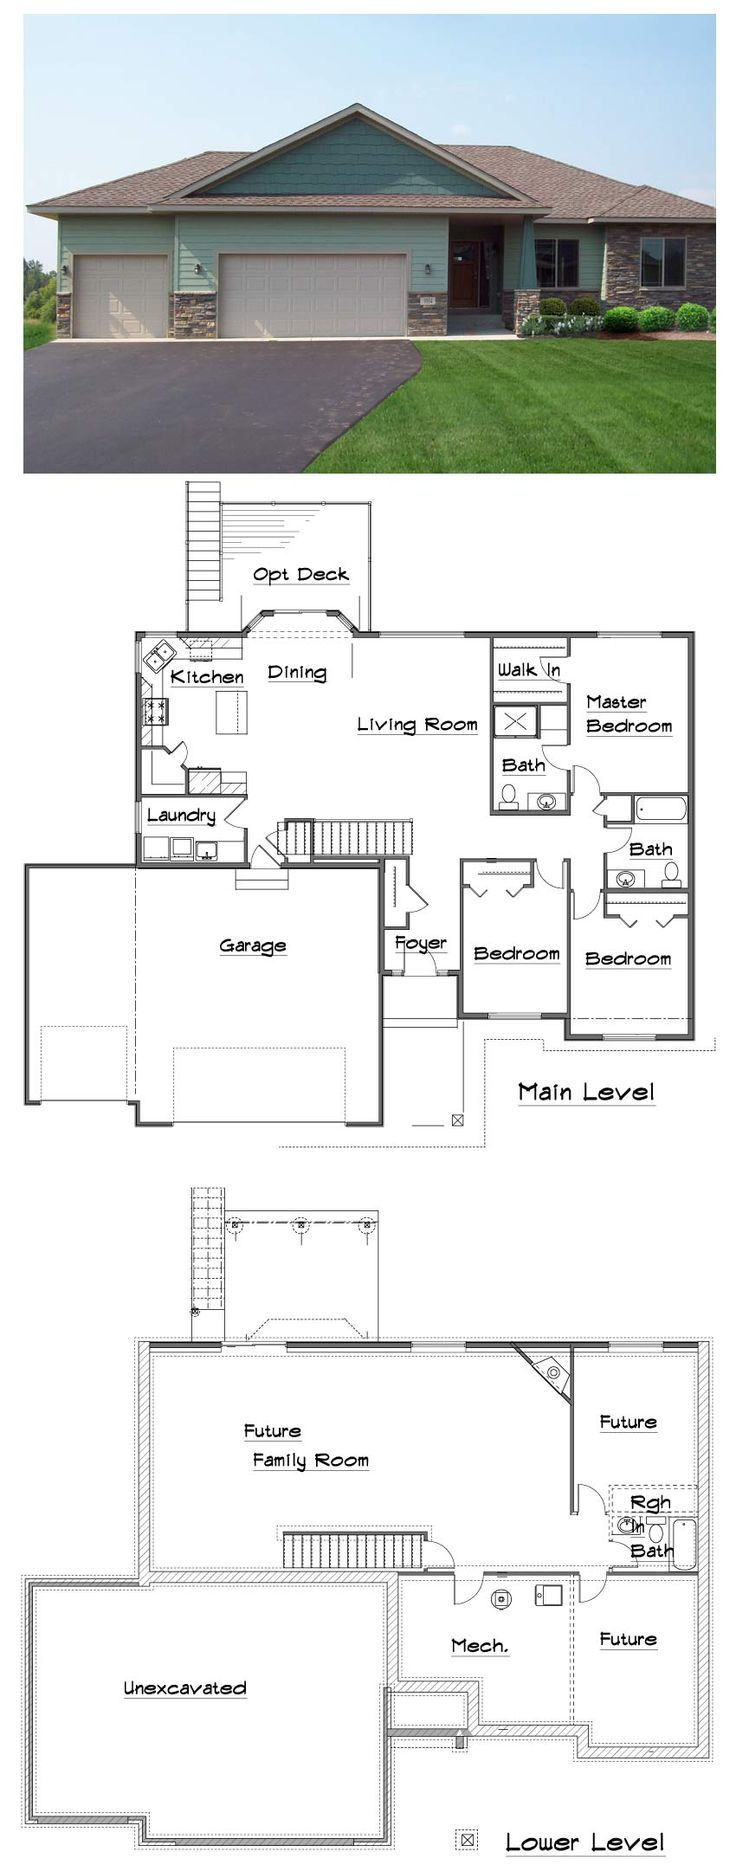 13 best sherco home models images on pinterest custom home sherco construction mn custom home builders the mahogony newhomeplans malvernweather Gallery